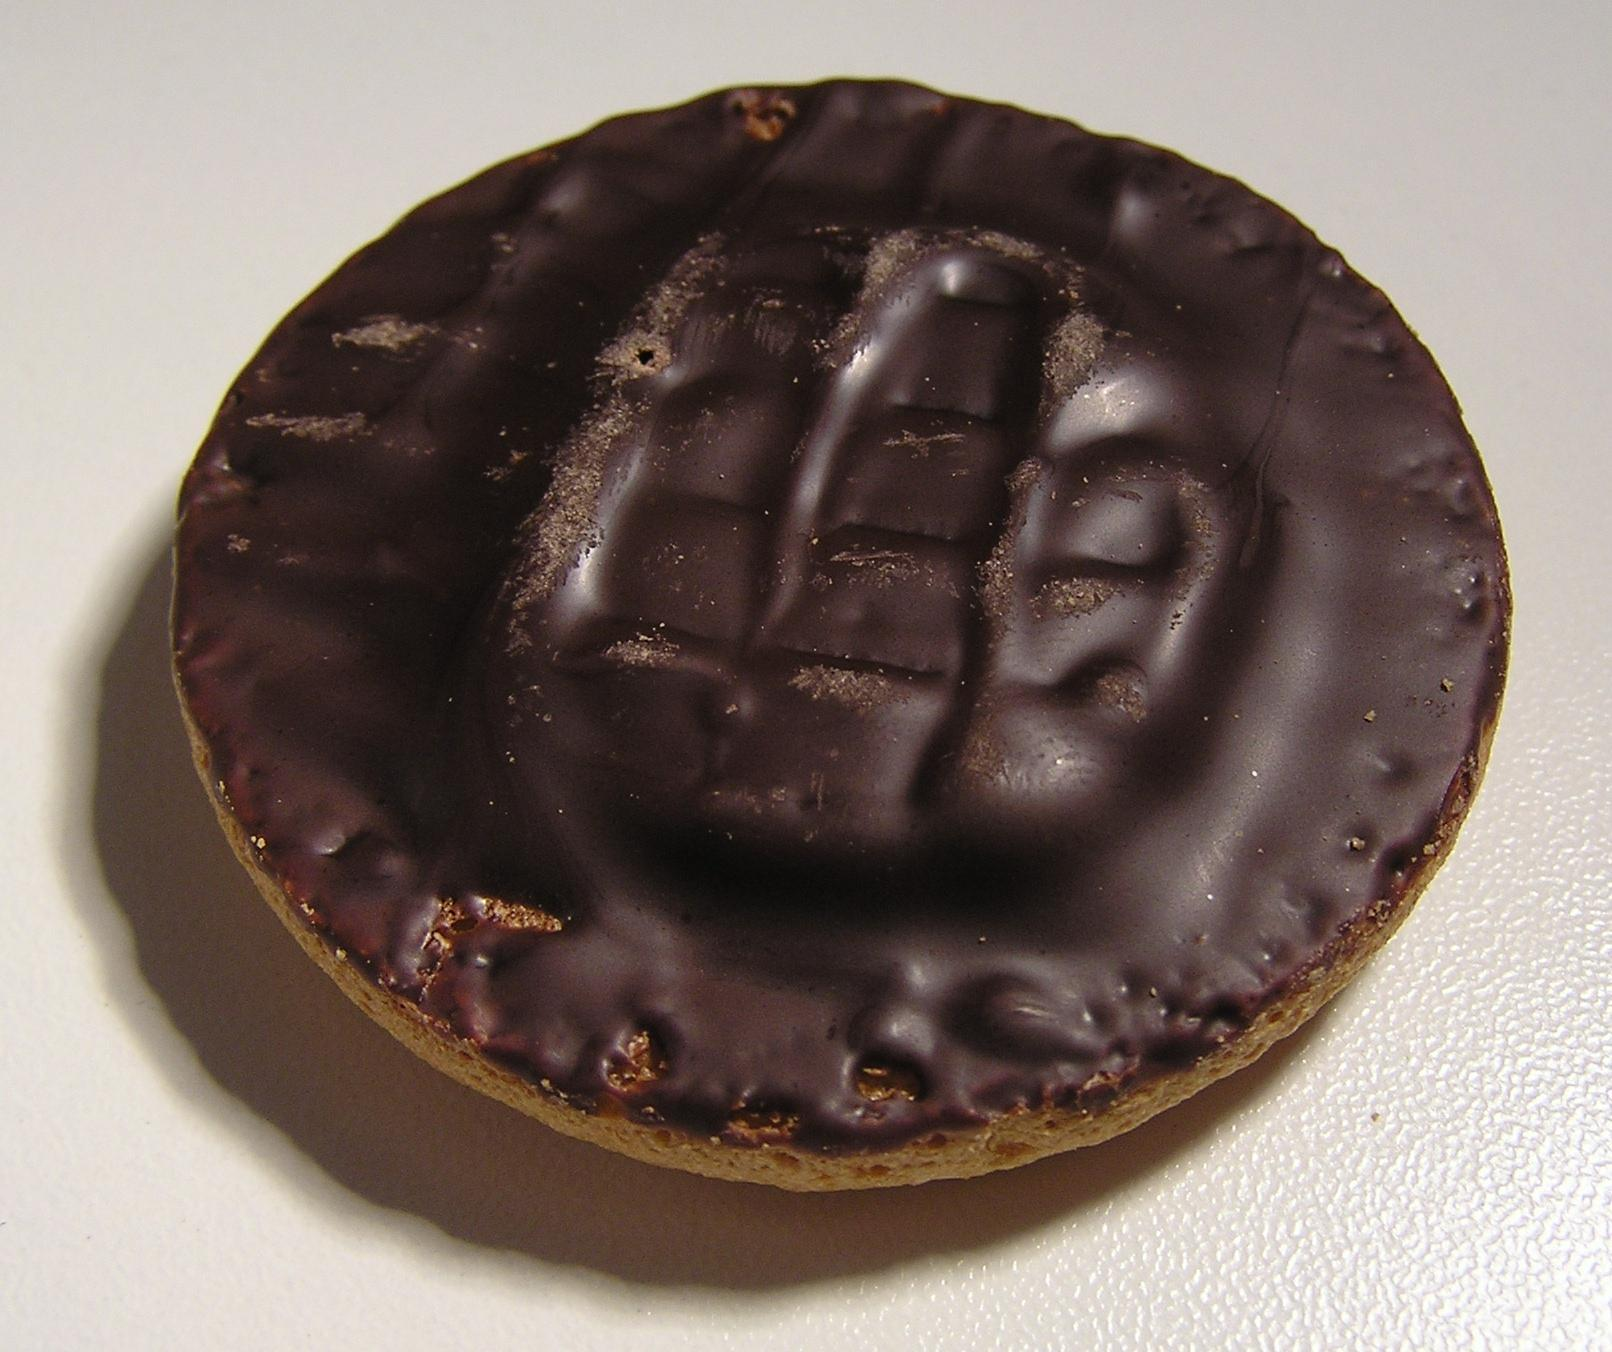 Jaffa Cakes- Are they cakes, or biscuits?